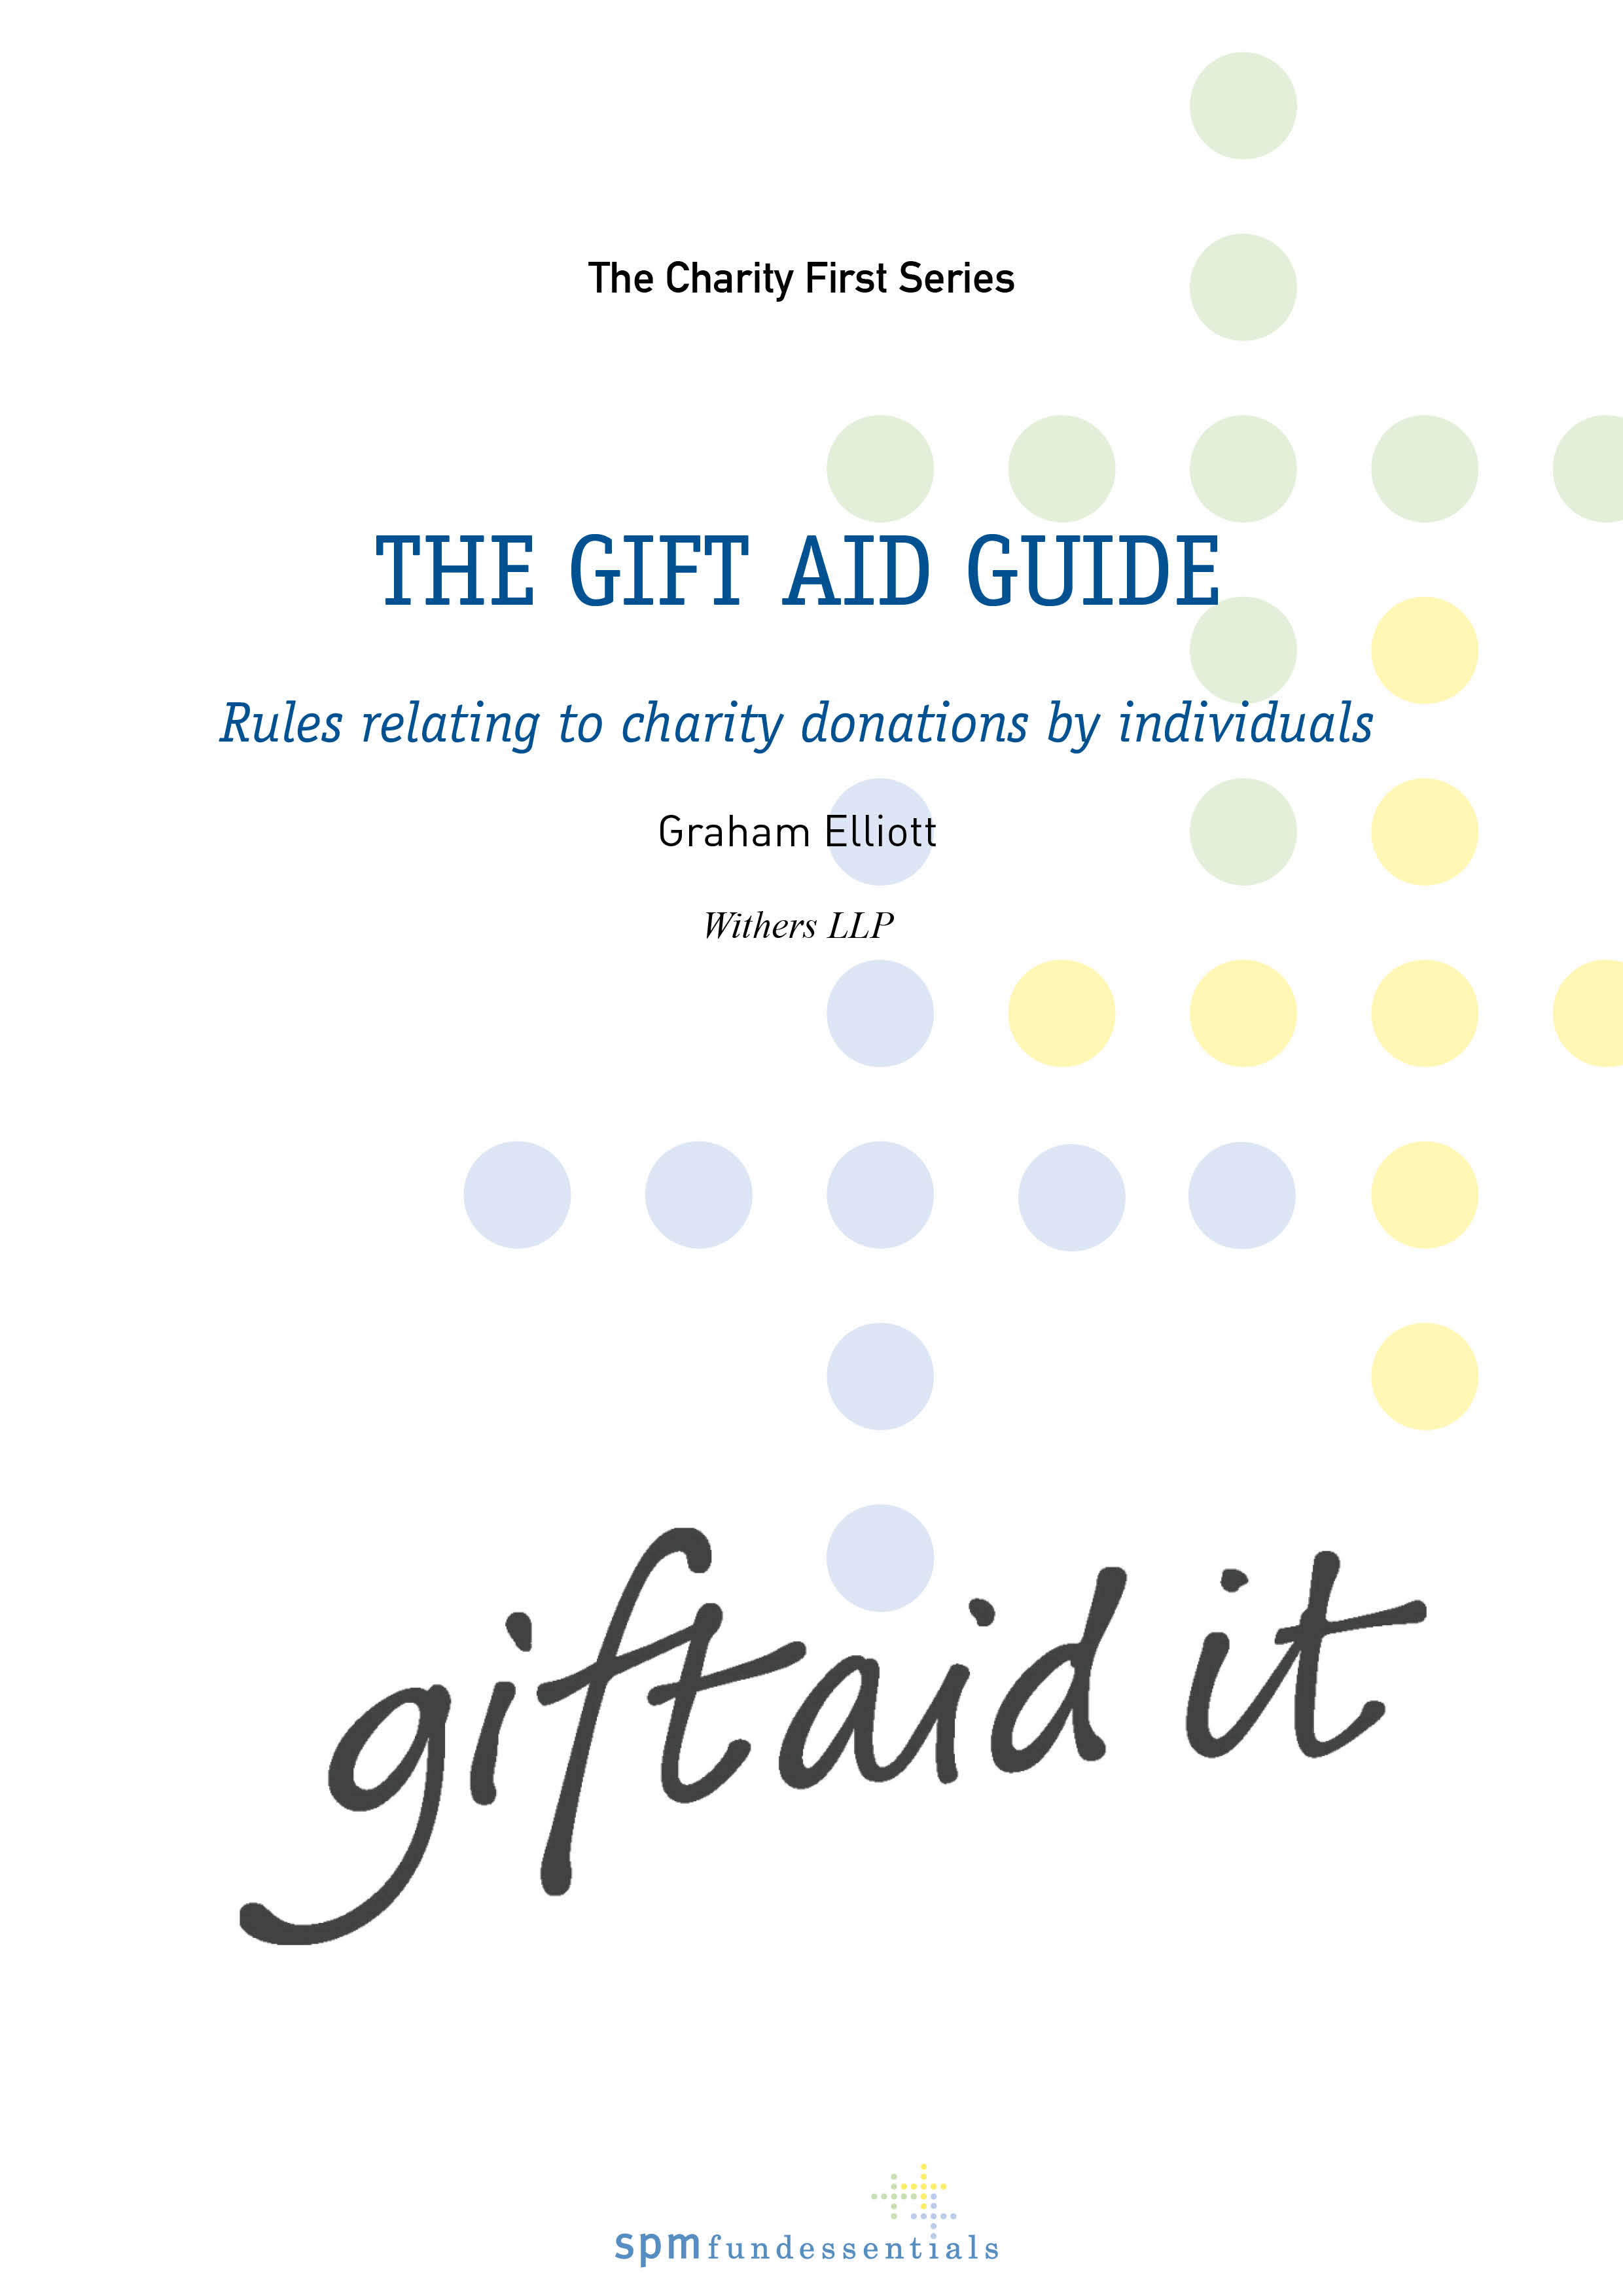 The Gift Aid Guide